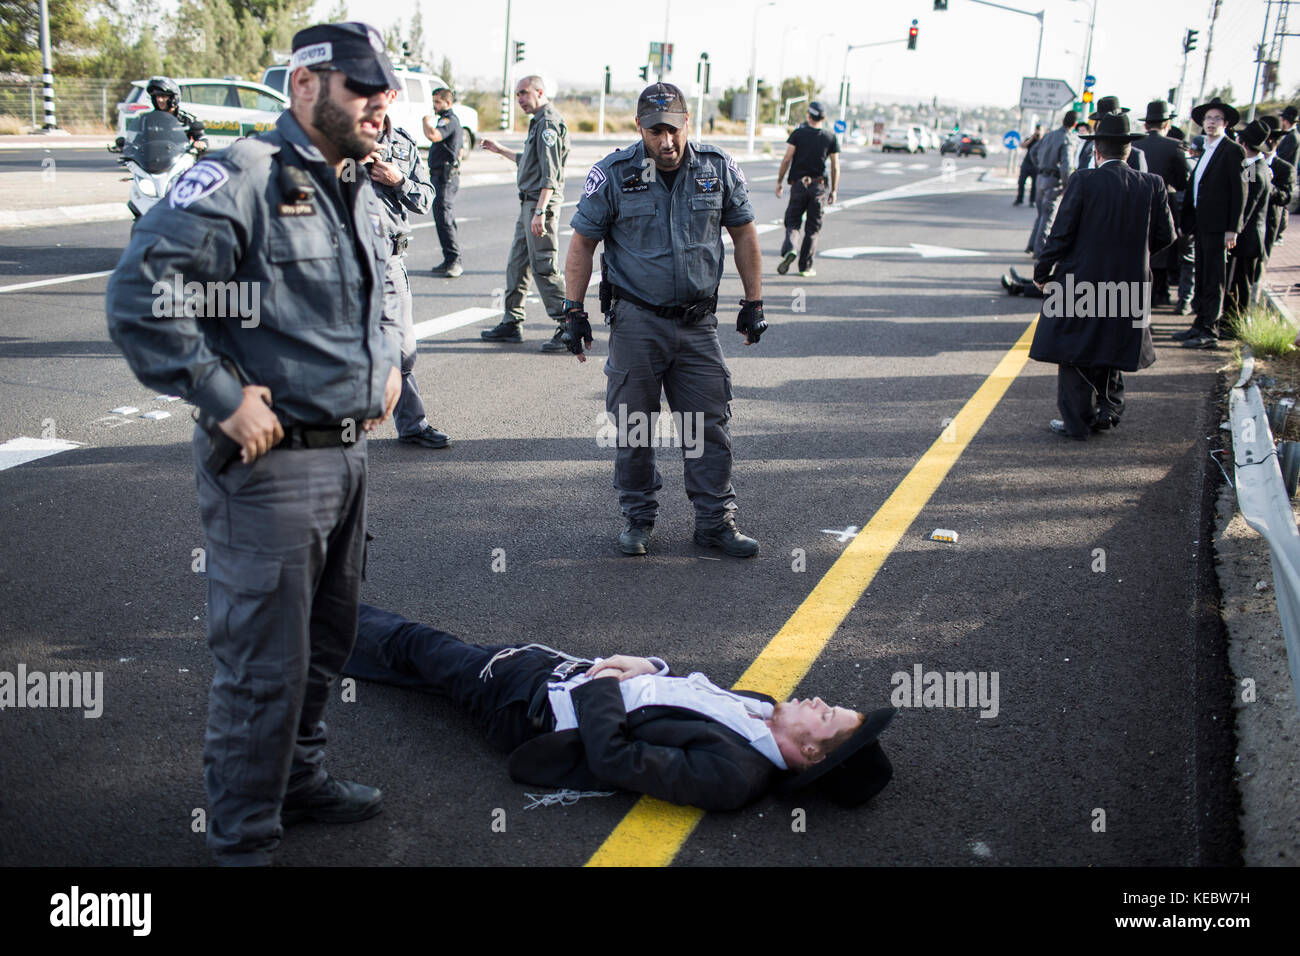 Modiin, Israel. 19th Oct, 2017. Ultra Orthodox Jewish men block a road during a protest in Modiin, Israel, 19 October - Stock Image